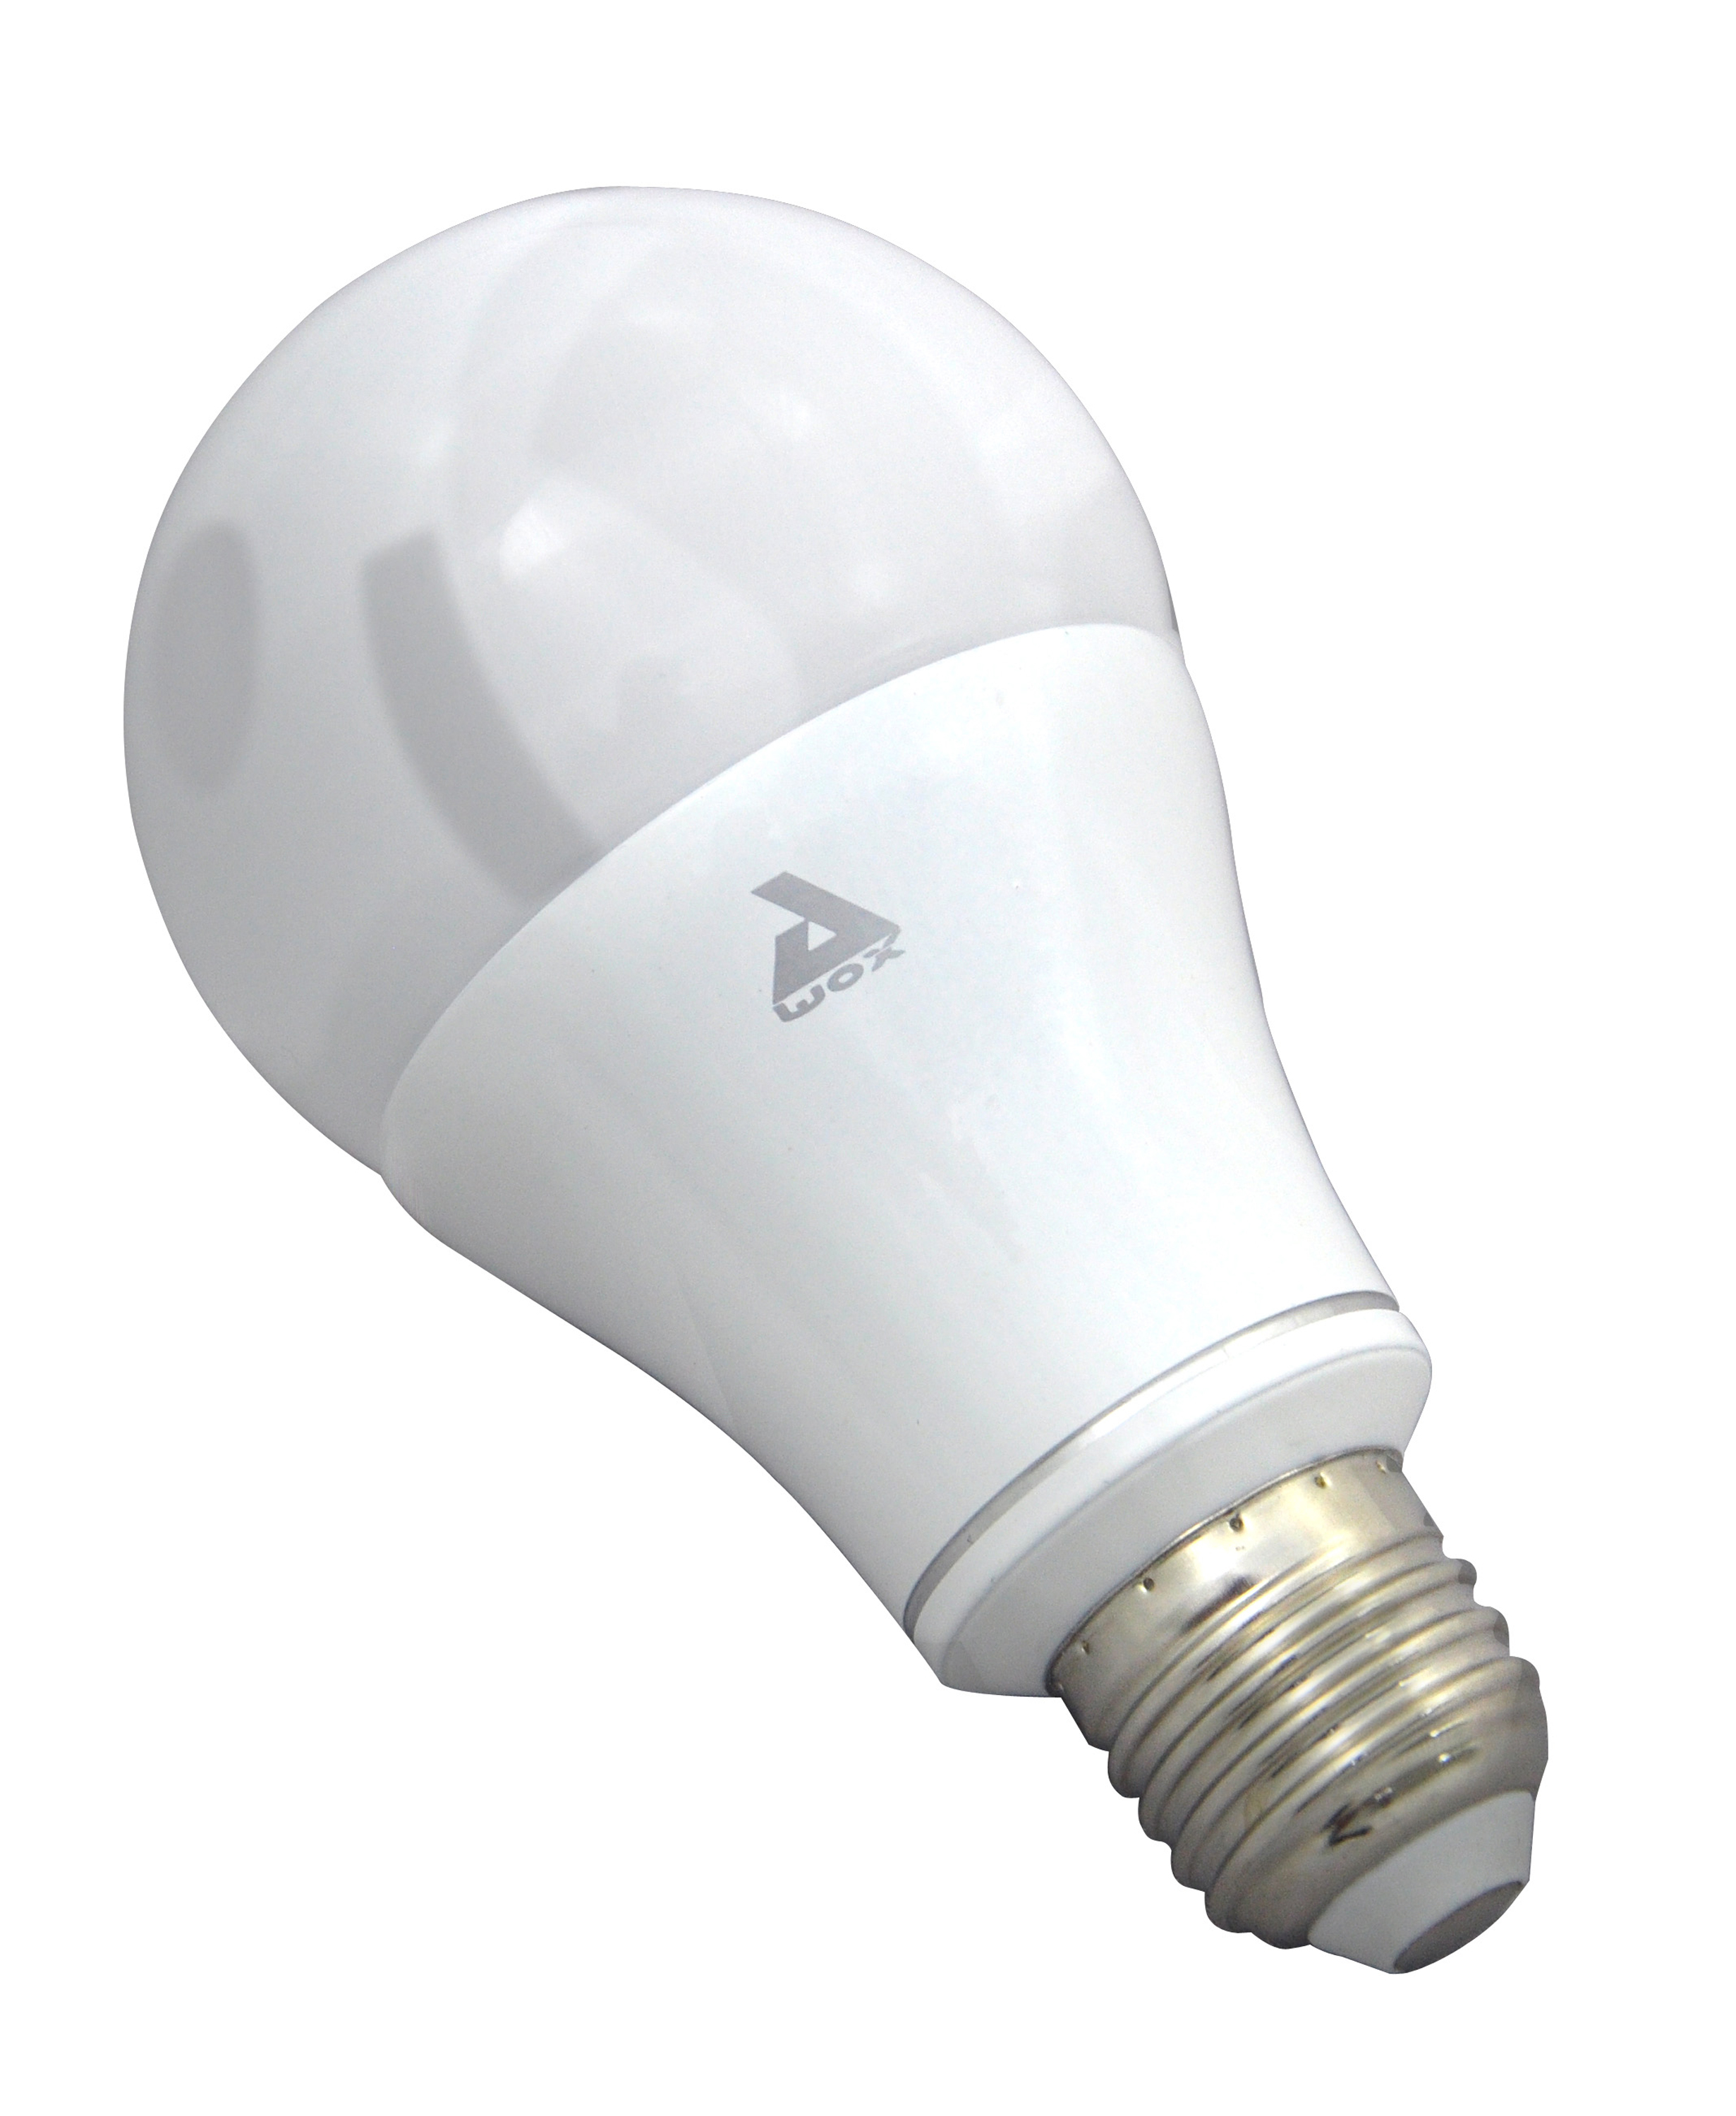 SML2-W13 LED 13W E27, BT control, white